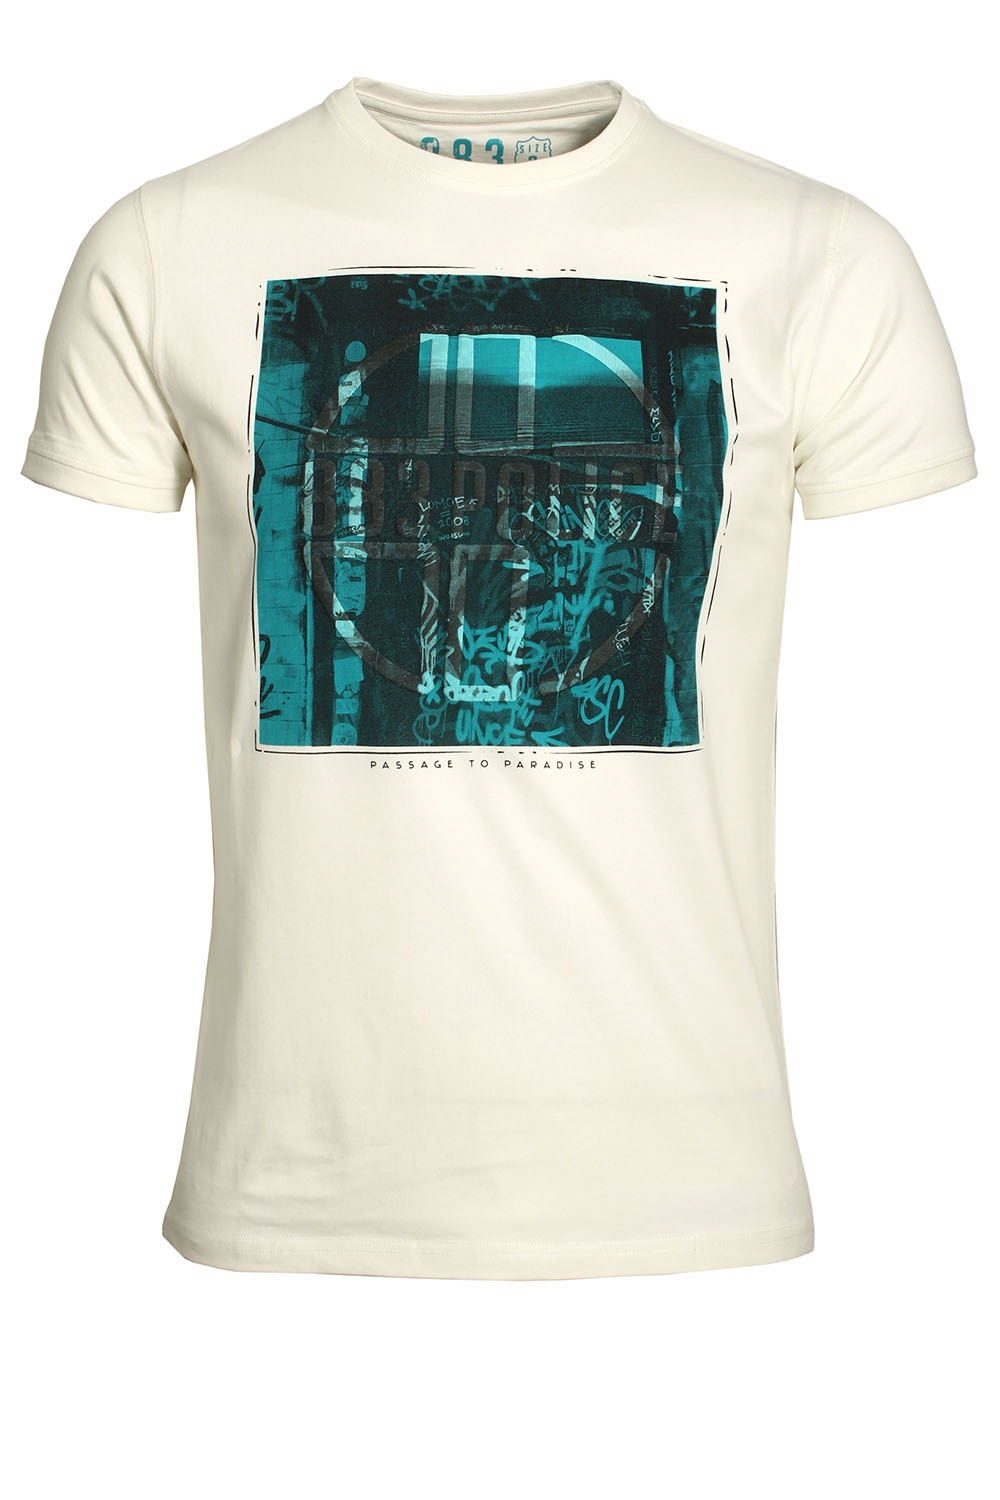 883 police pada graphic print t shirt shop 883 police t for Graphic t shirt shop